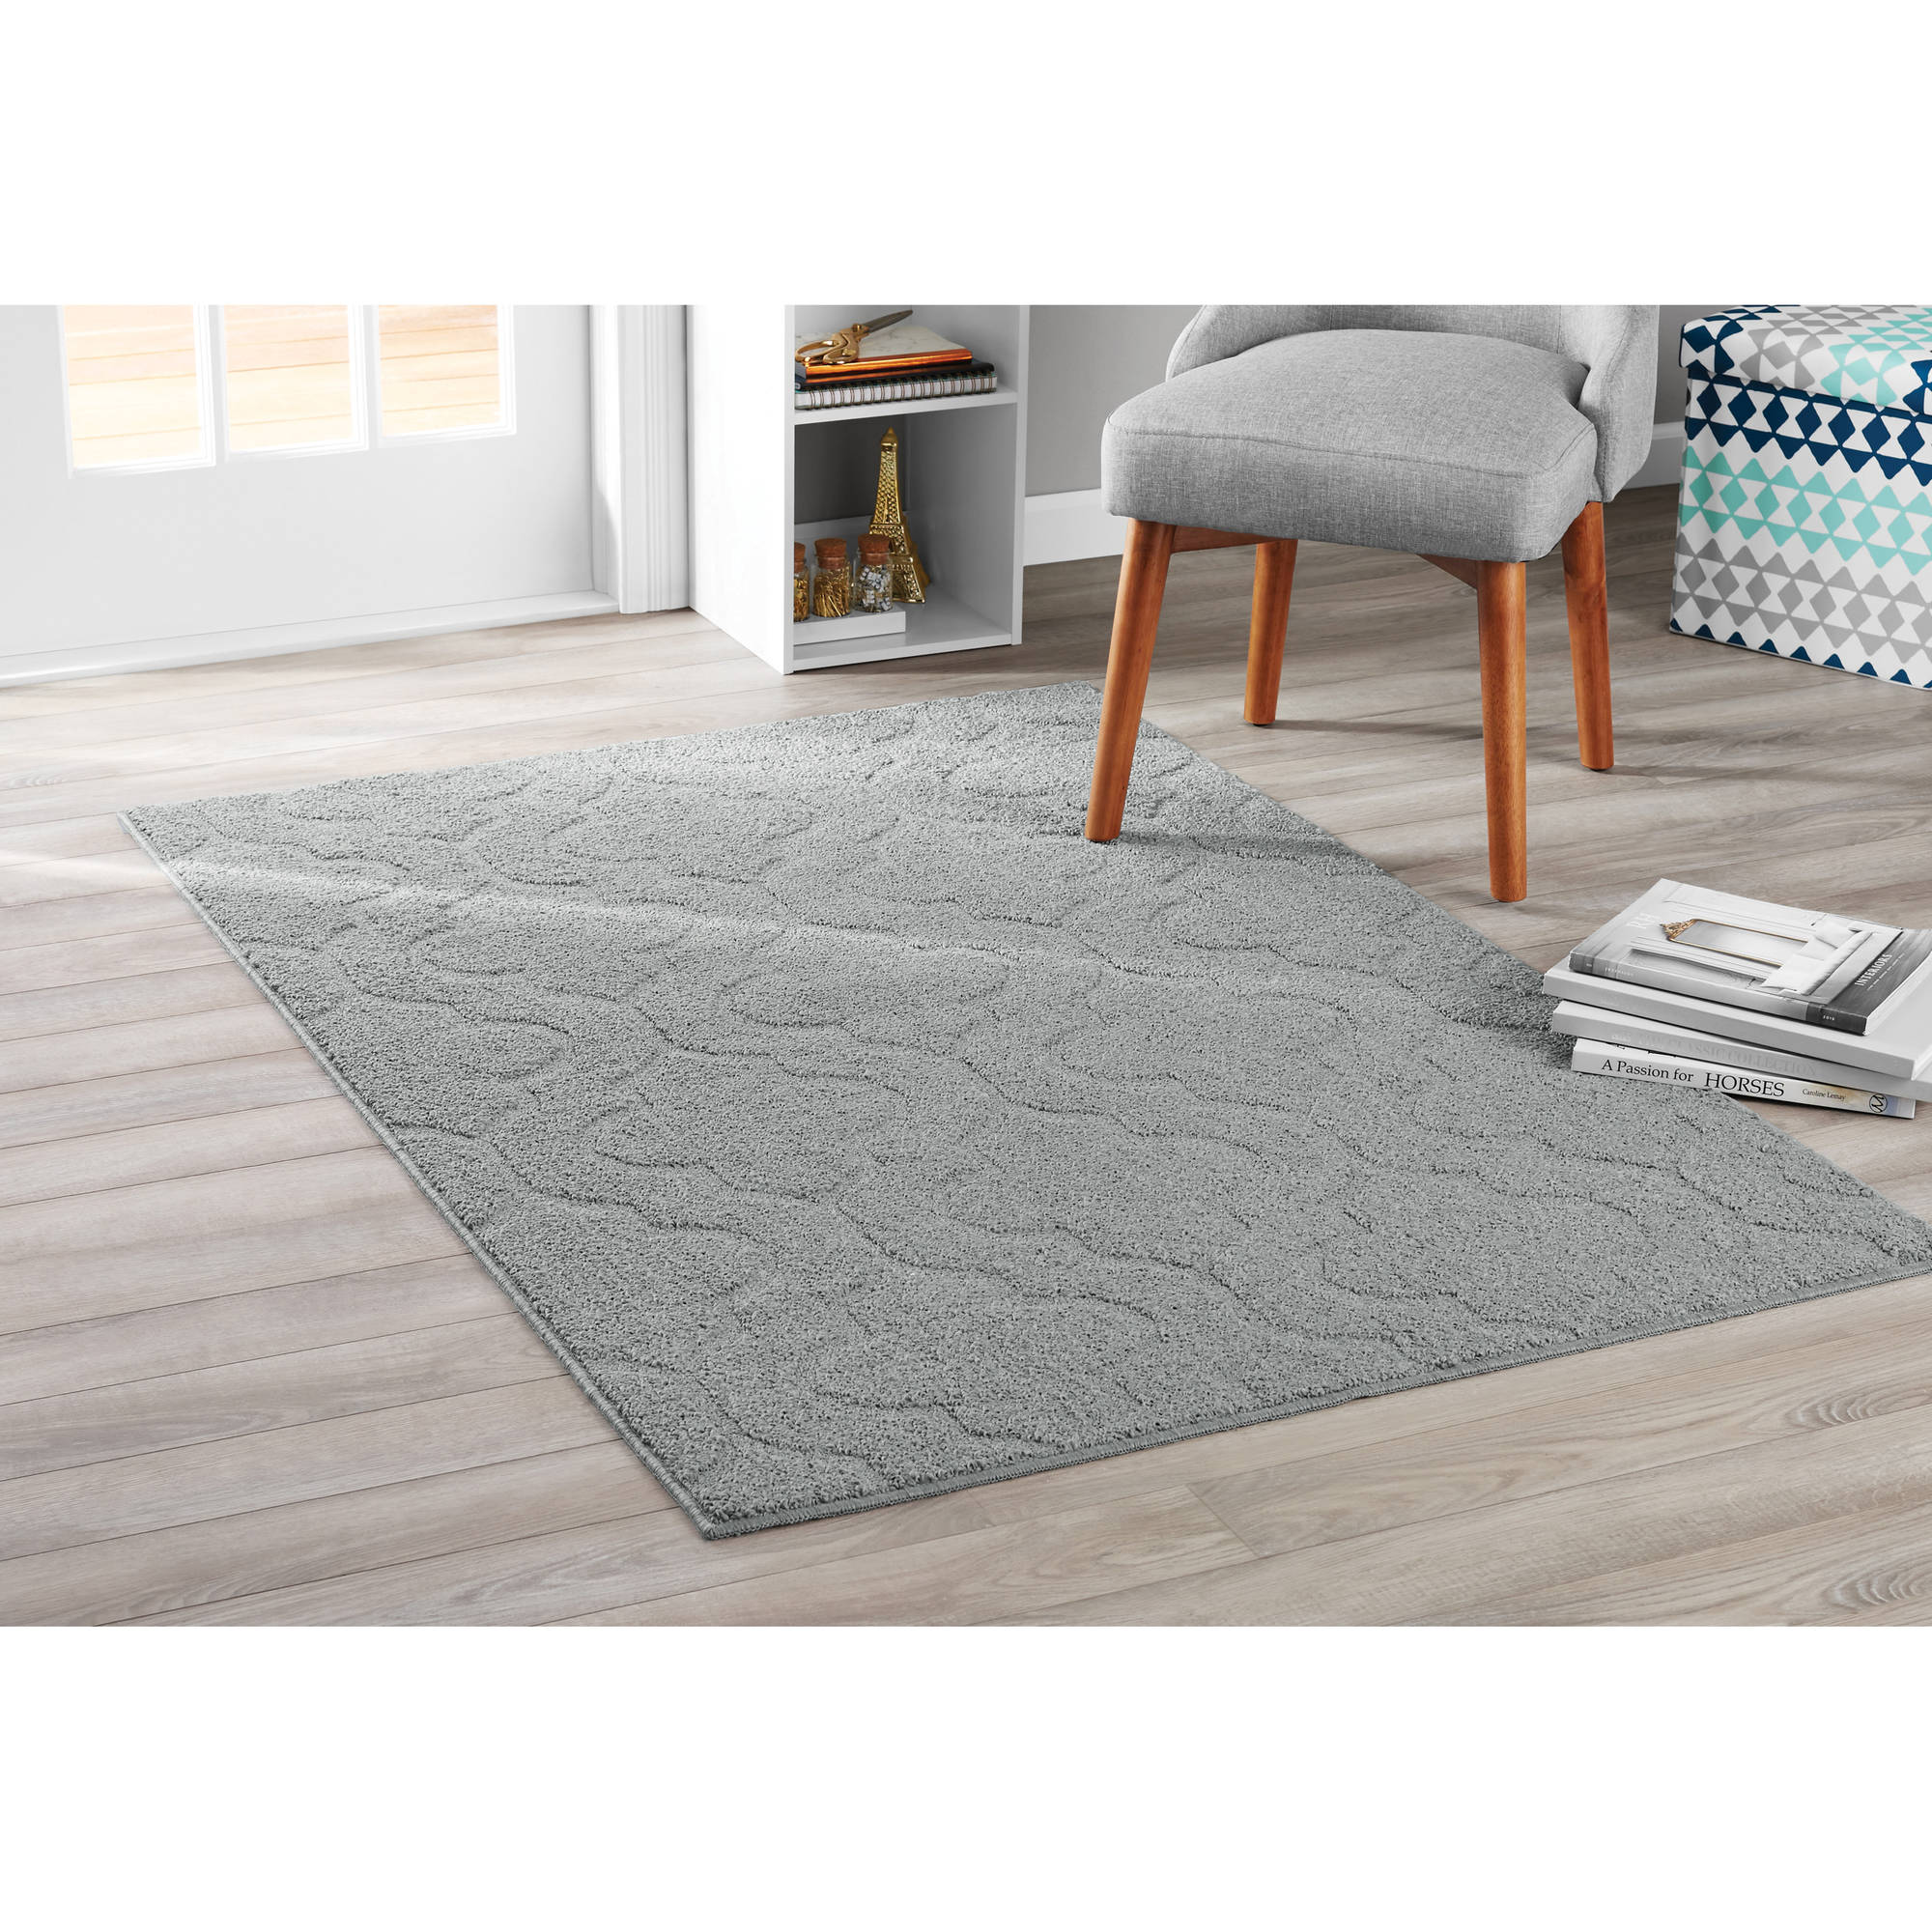 Mainstays Double Quatrefoil Area Rug